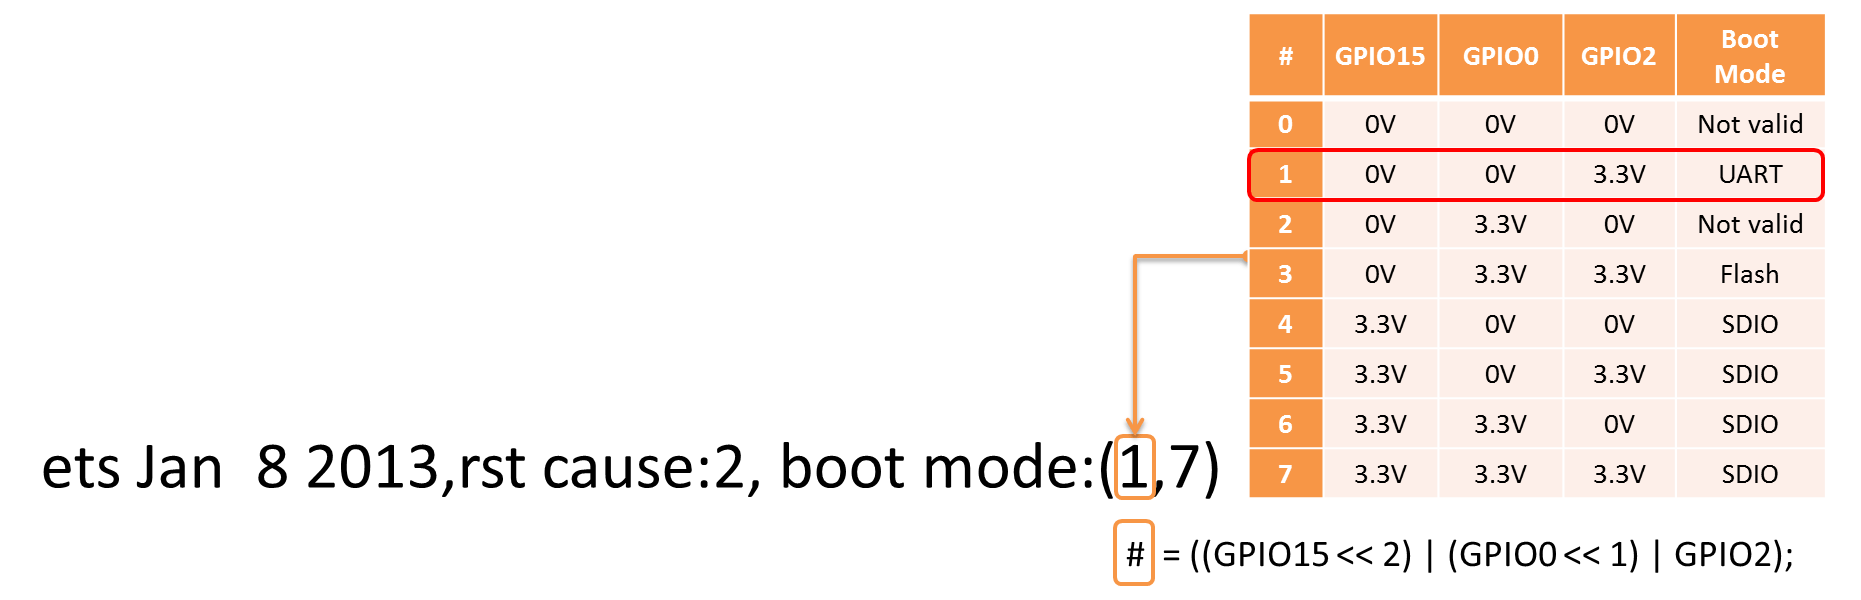 hight resolution of decoding of boot mode